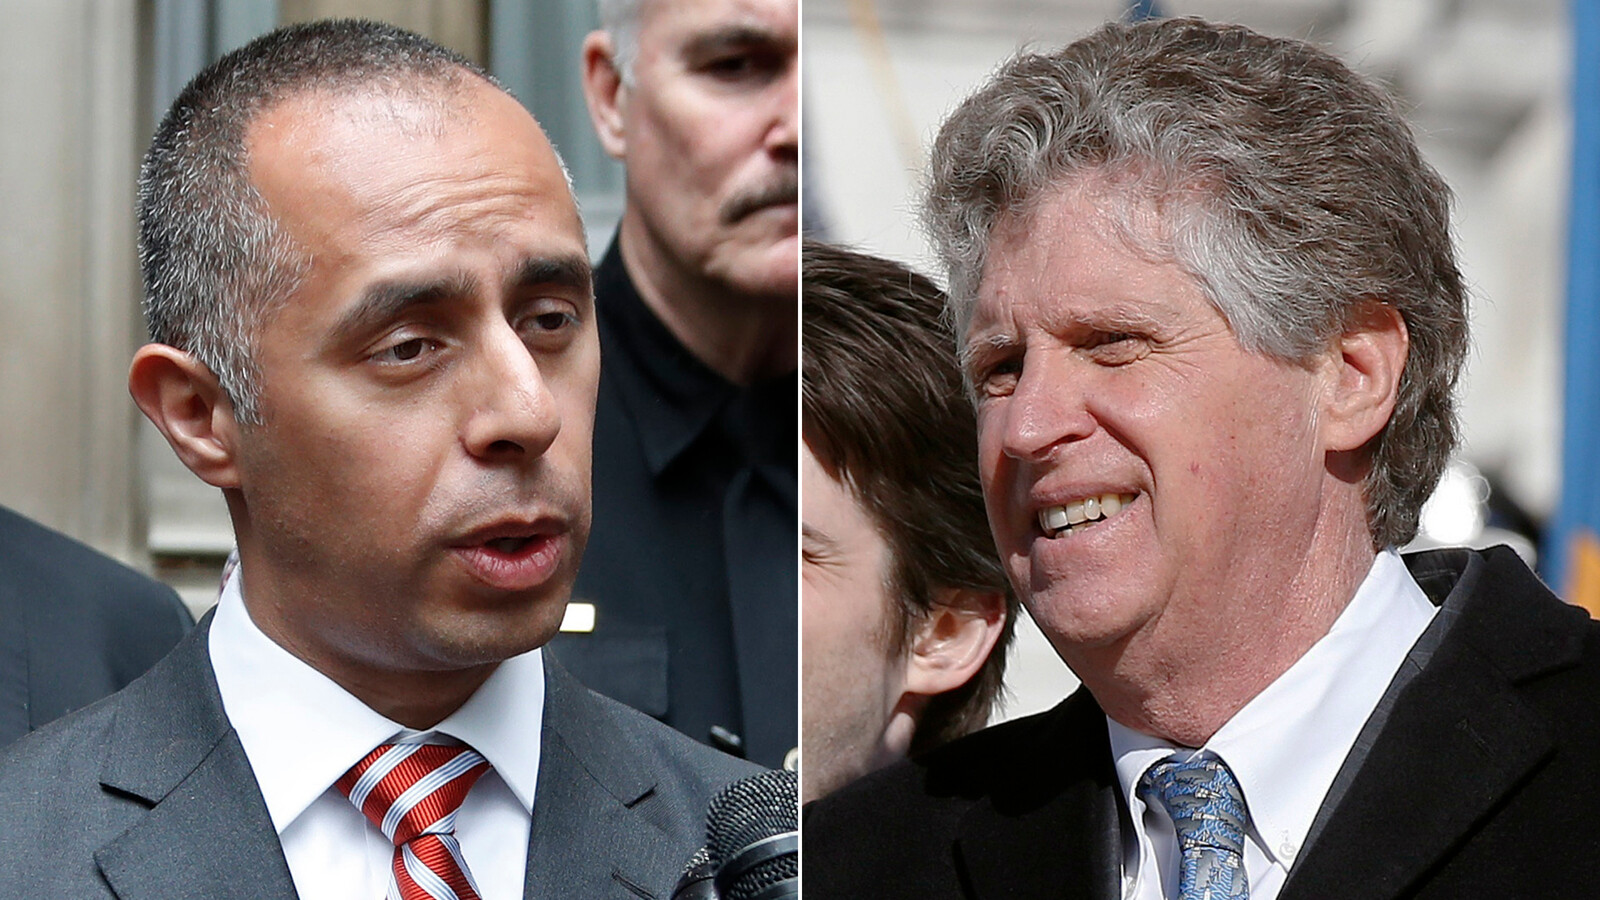 Security separates Providence mayor and Rhode Island governor during a tense confrontation